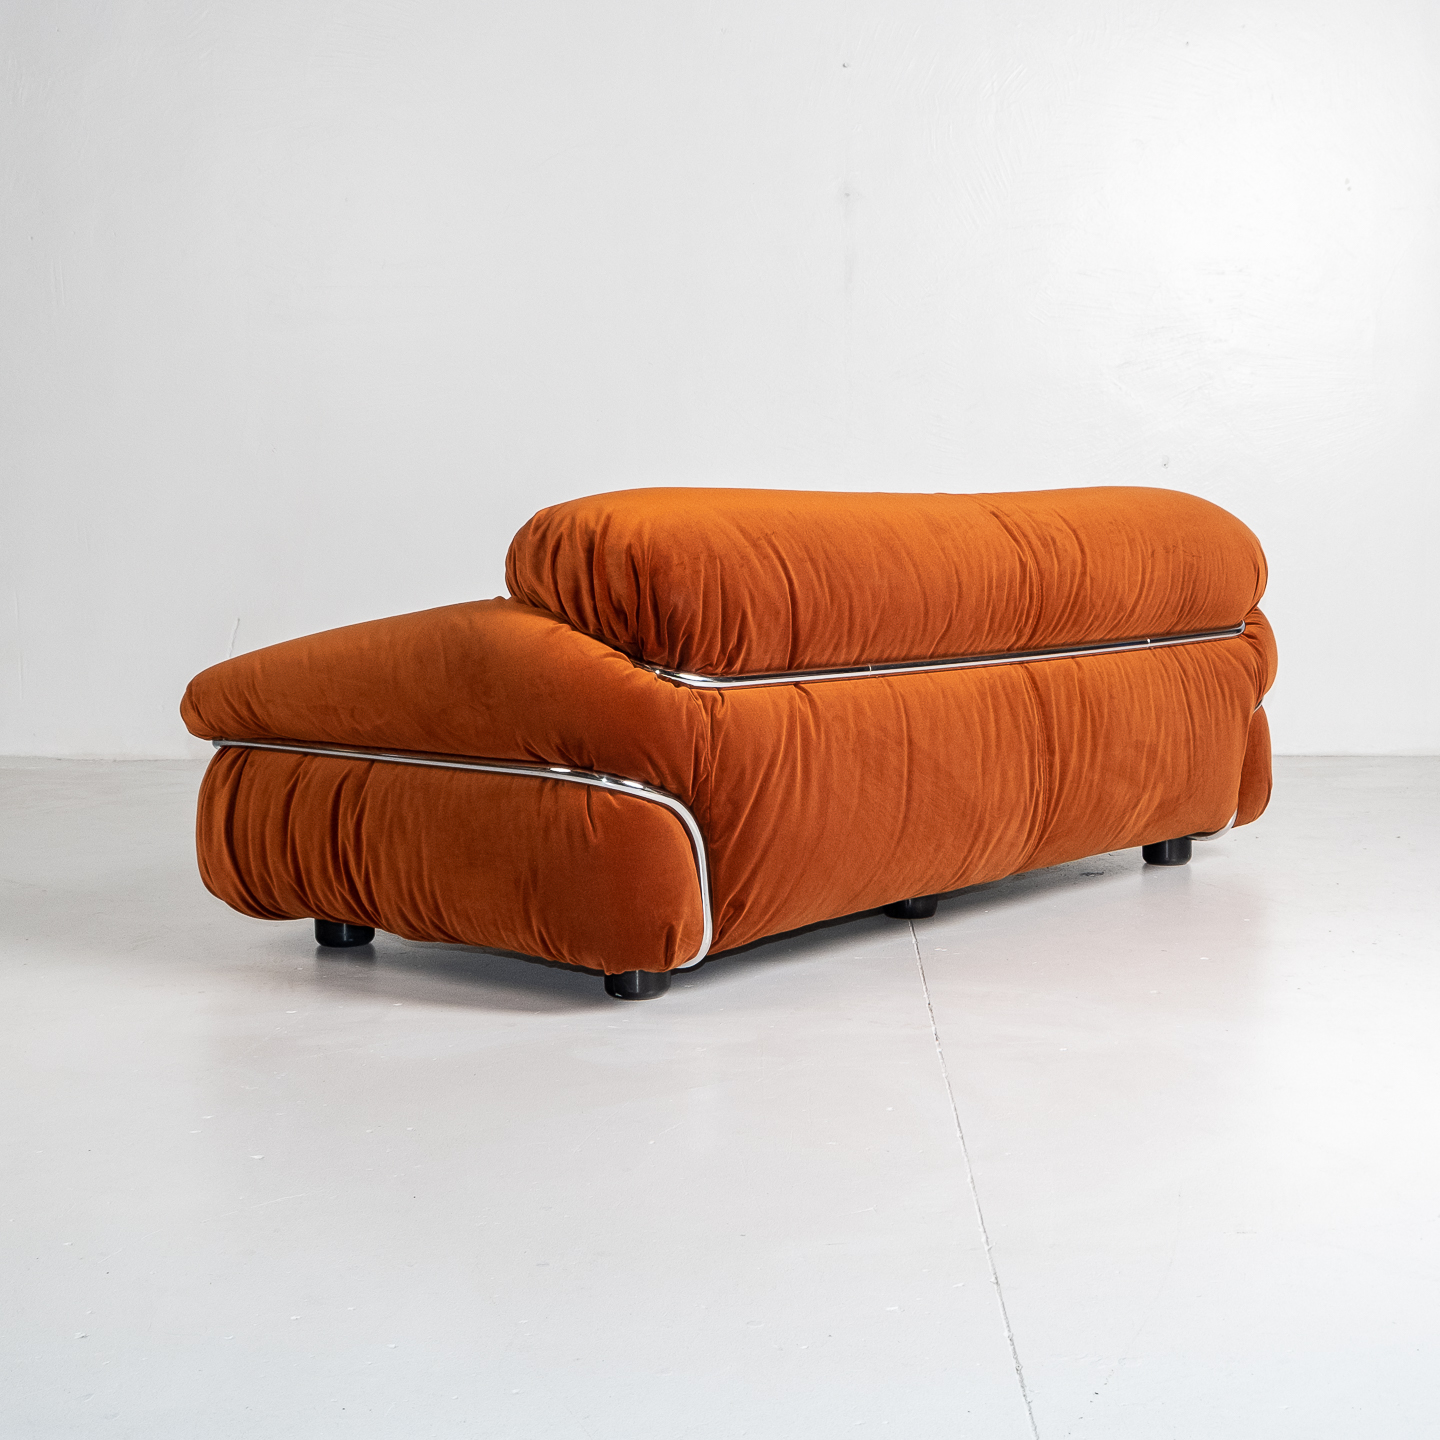 Model 595 Sesann Sofa By Gianfranco Frattini For Cassina, 1970s, Italy 199